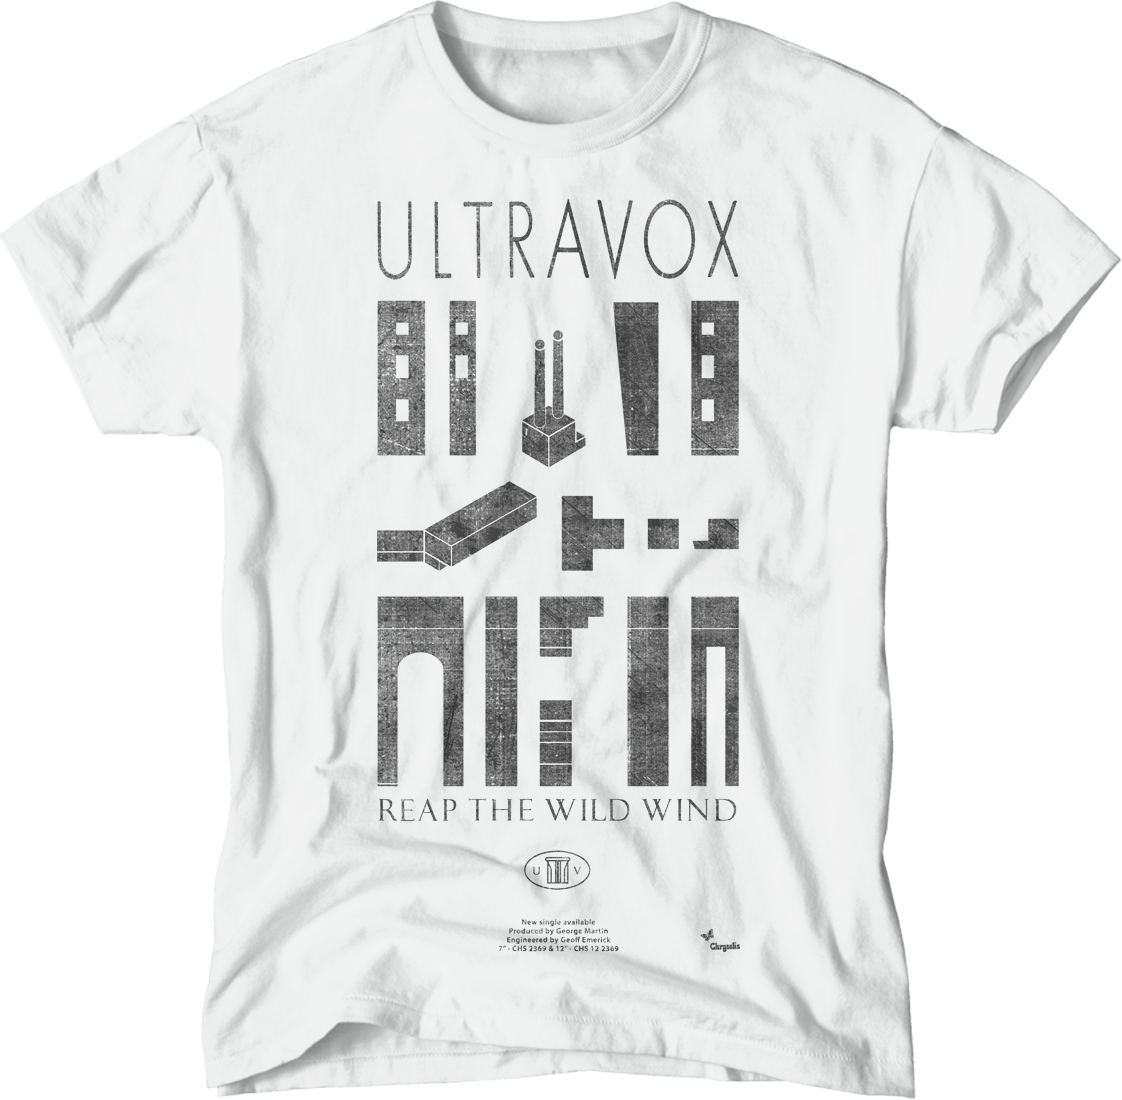 Ultravox/Wild T-Shirt